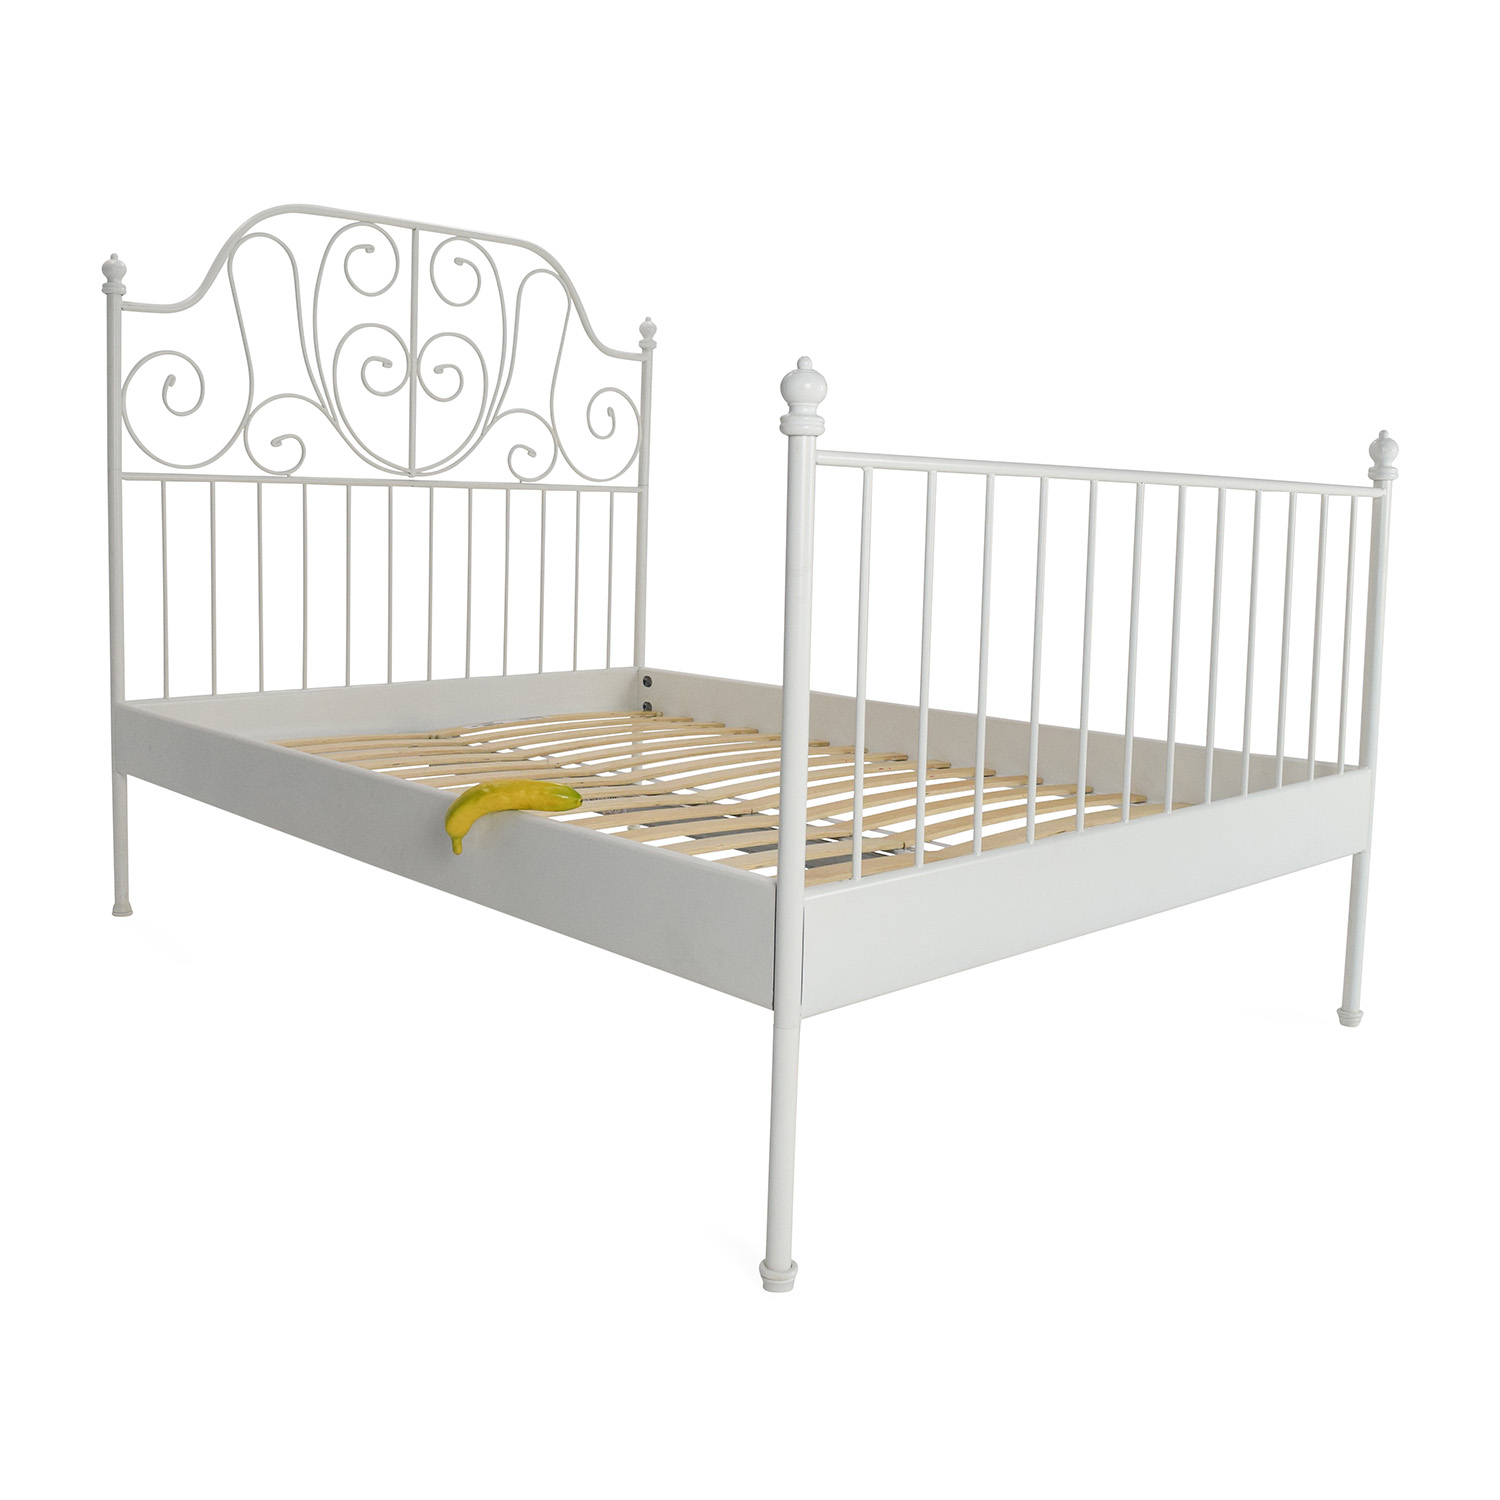 Ikea size bed frame 28 images ikea queen size bed for Second hand bunk beds